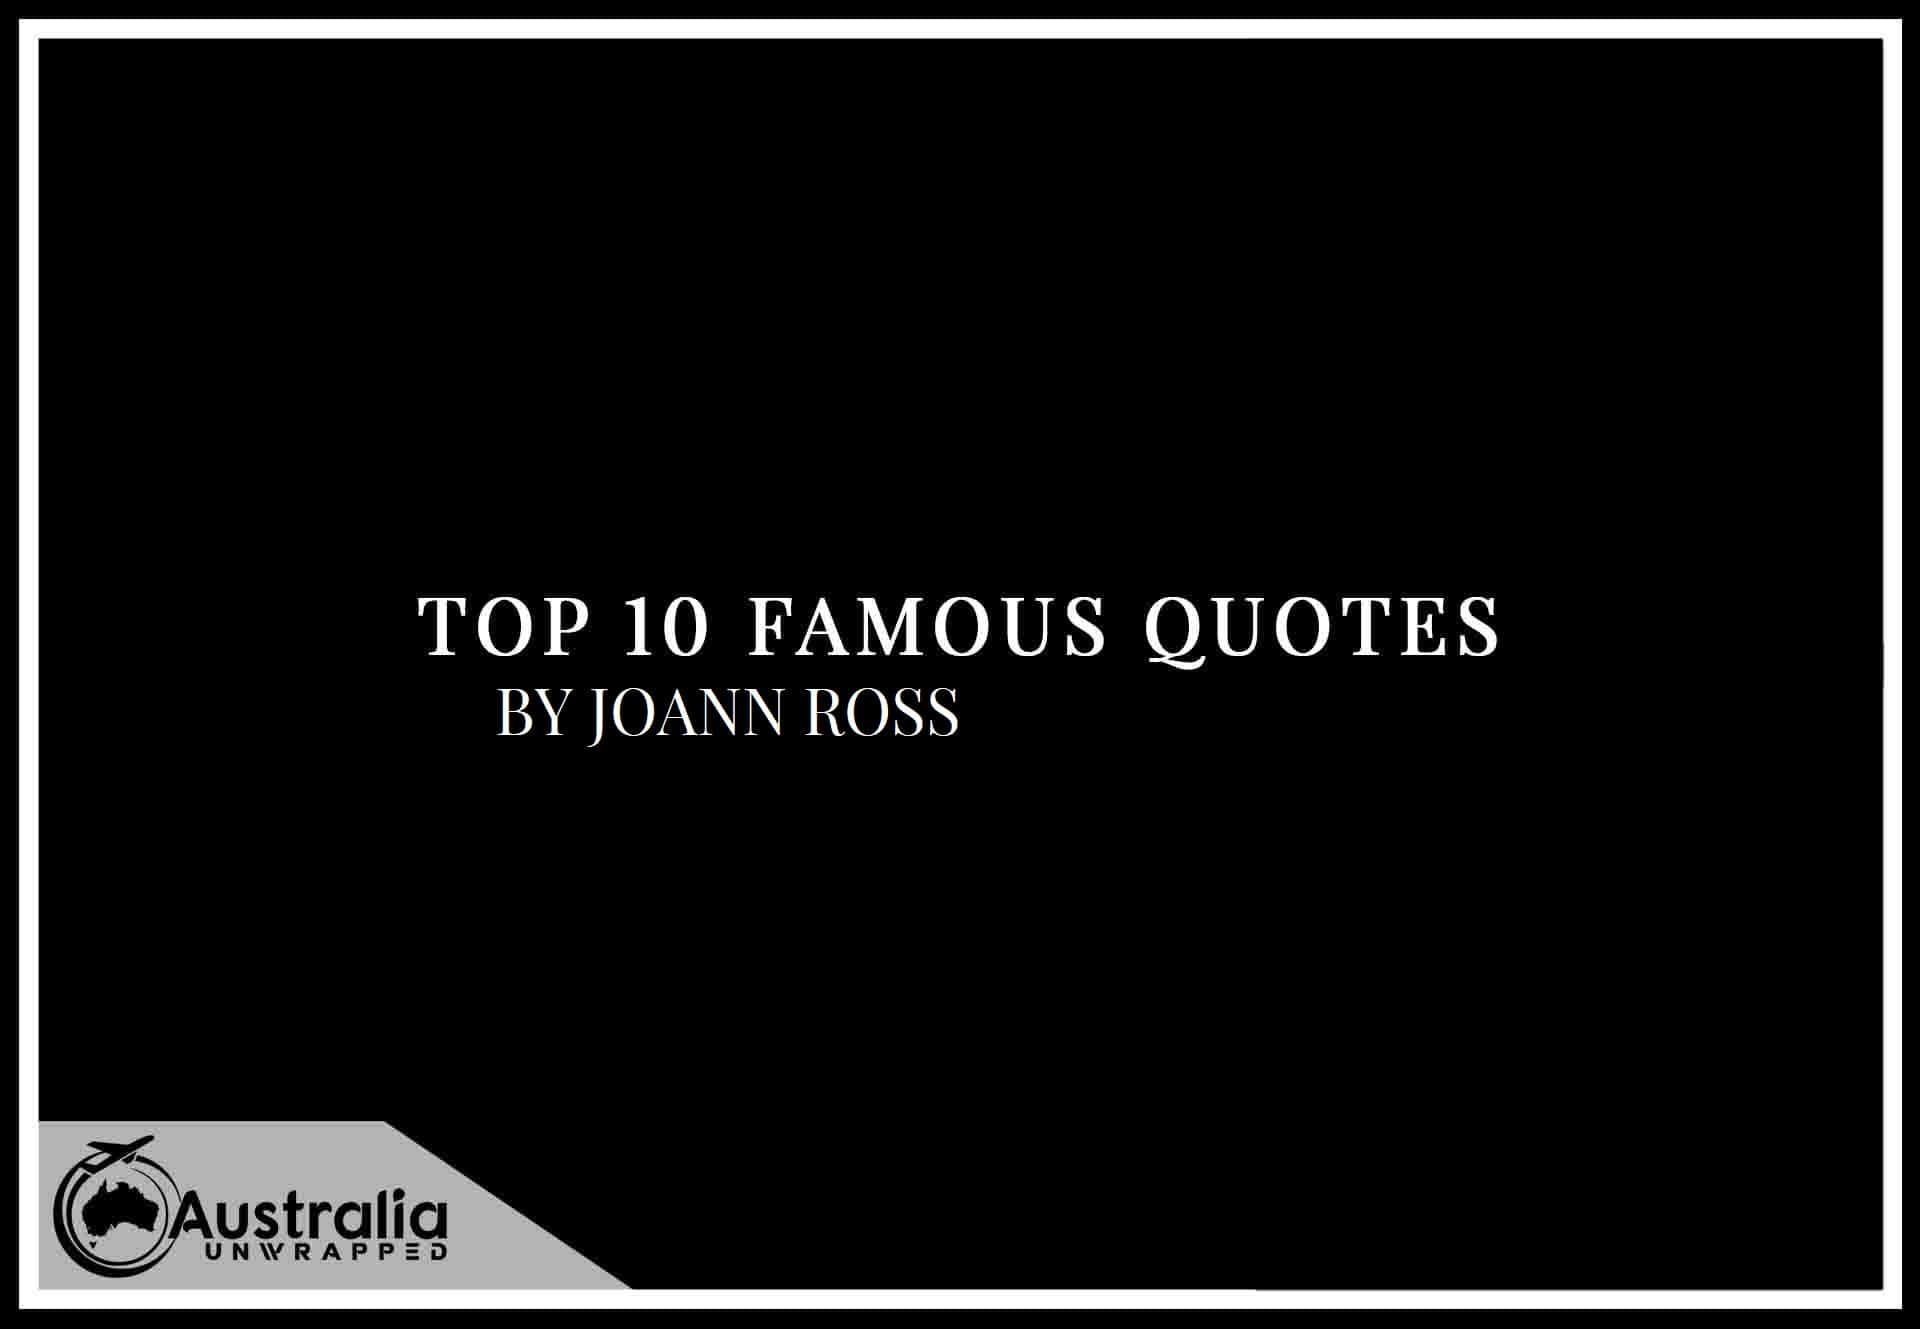 Top 10 Famous Quotes by Author JoAnn Ross